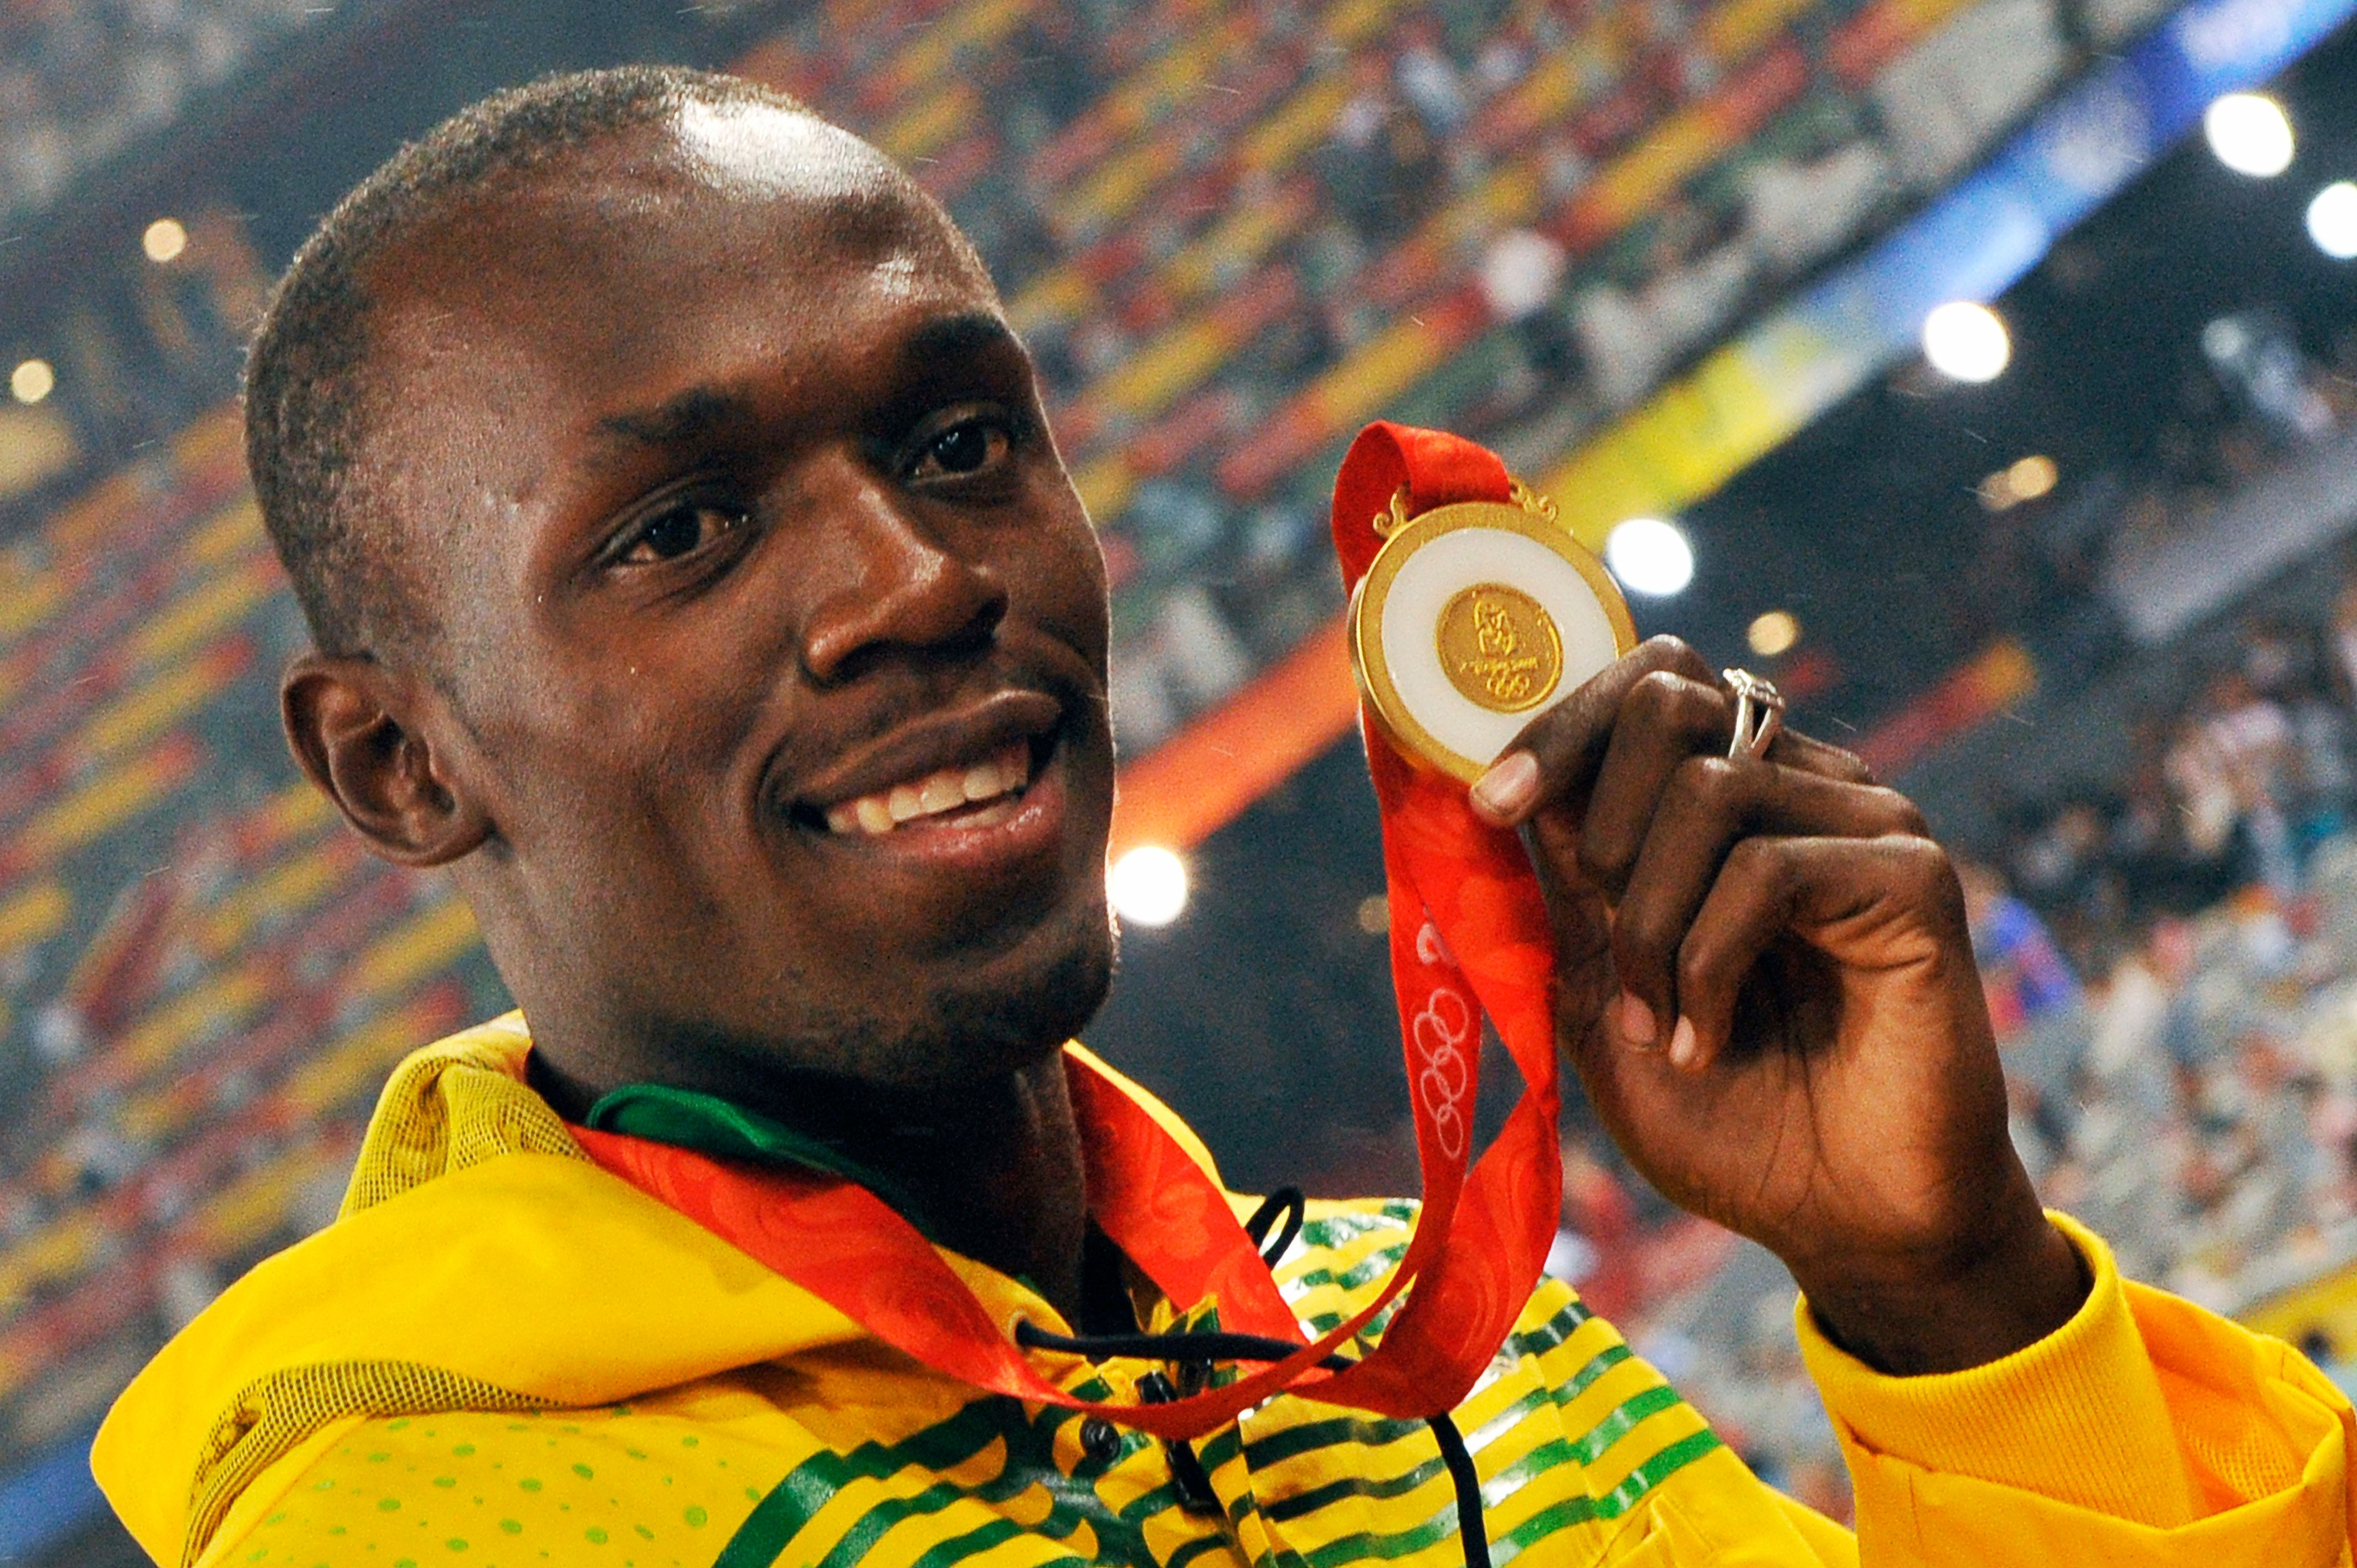 Usain Bolt with his gold medal. (Photo by Eddy LEMAISTRE/Corbis via Getty Images)